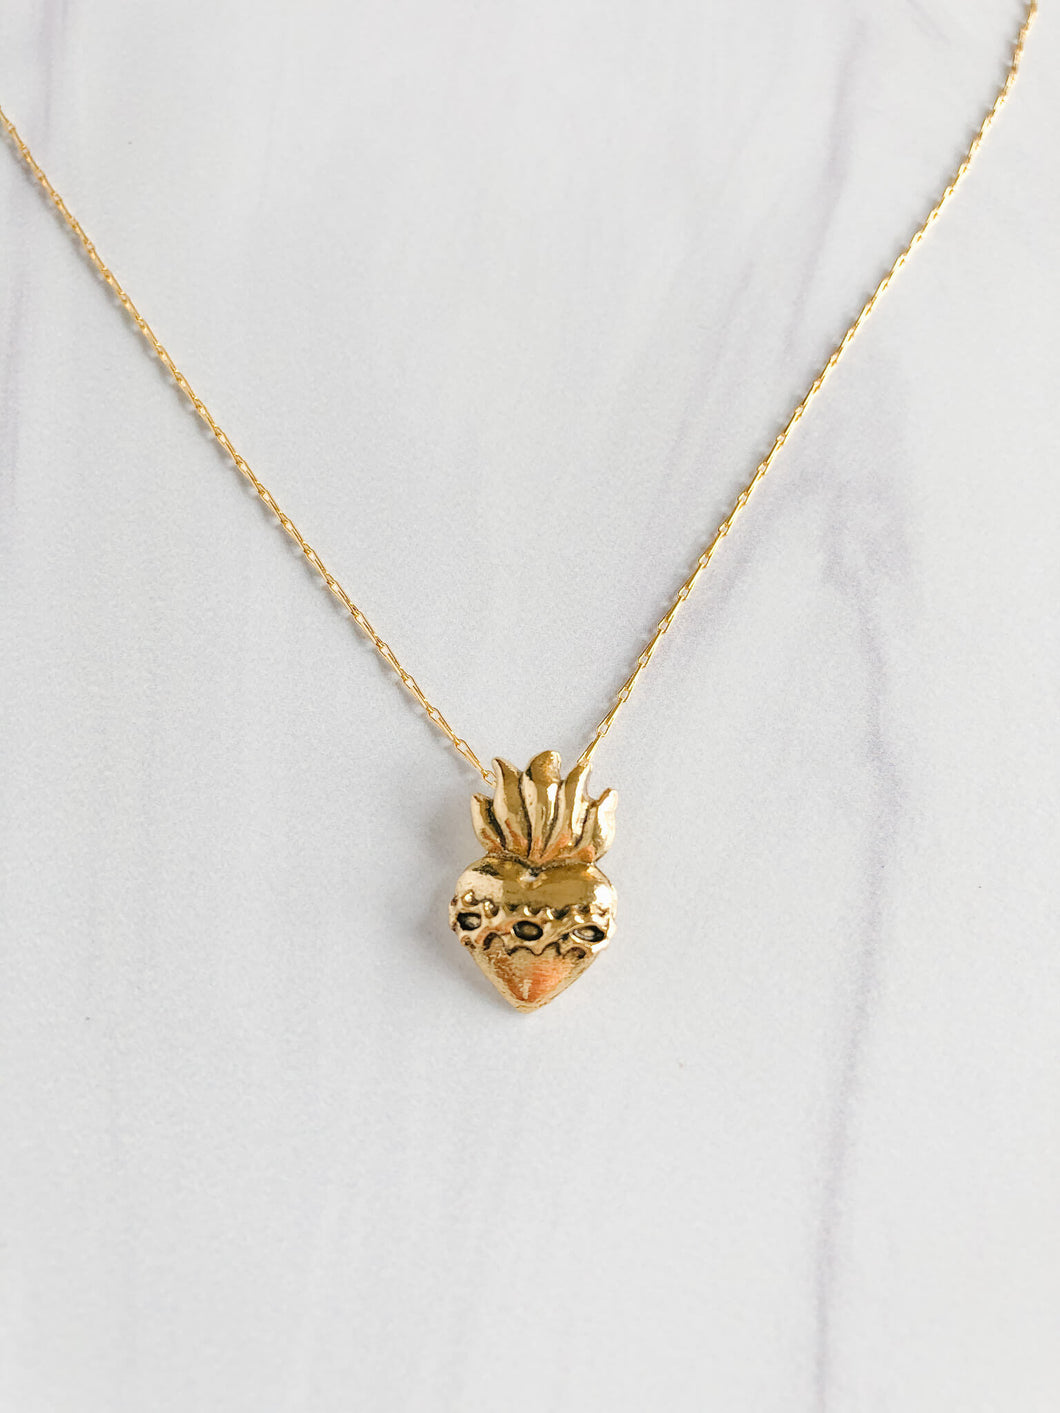 Corazon Sagrado Necklace